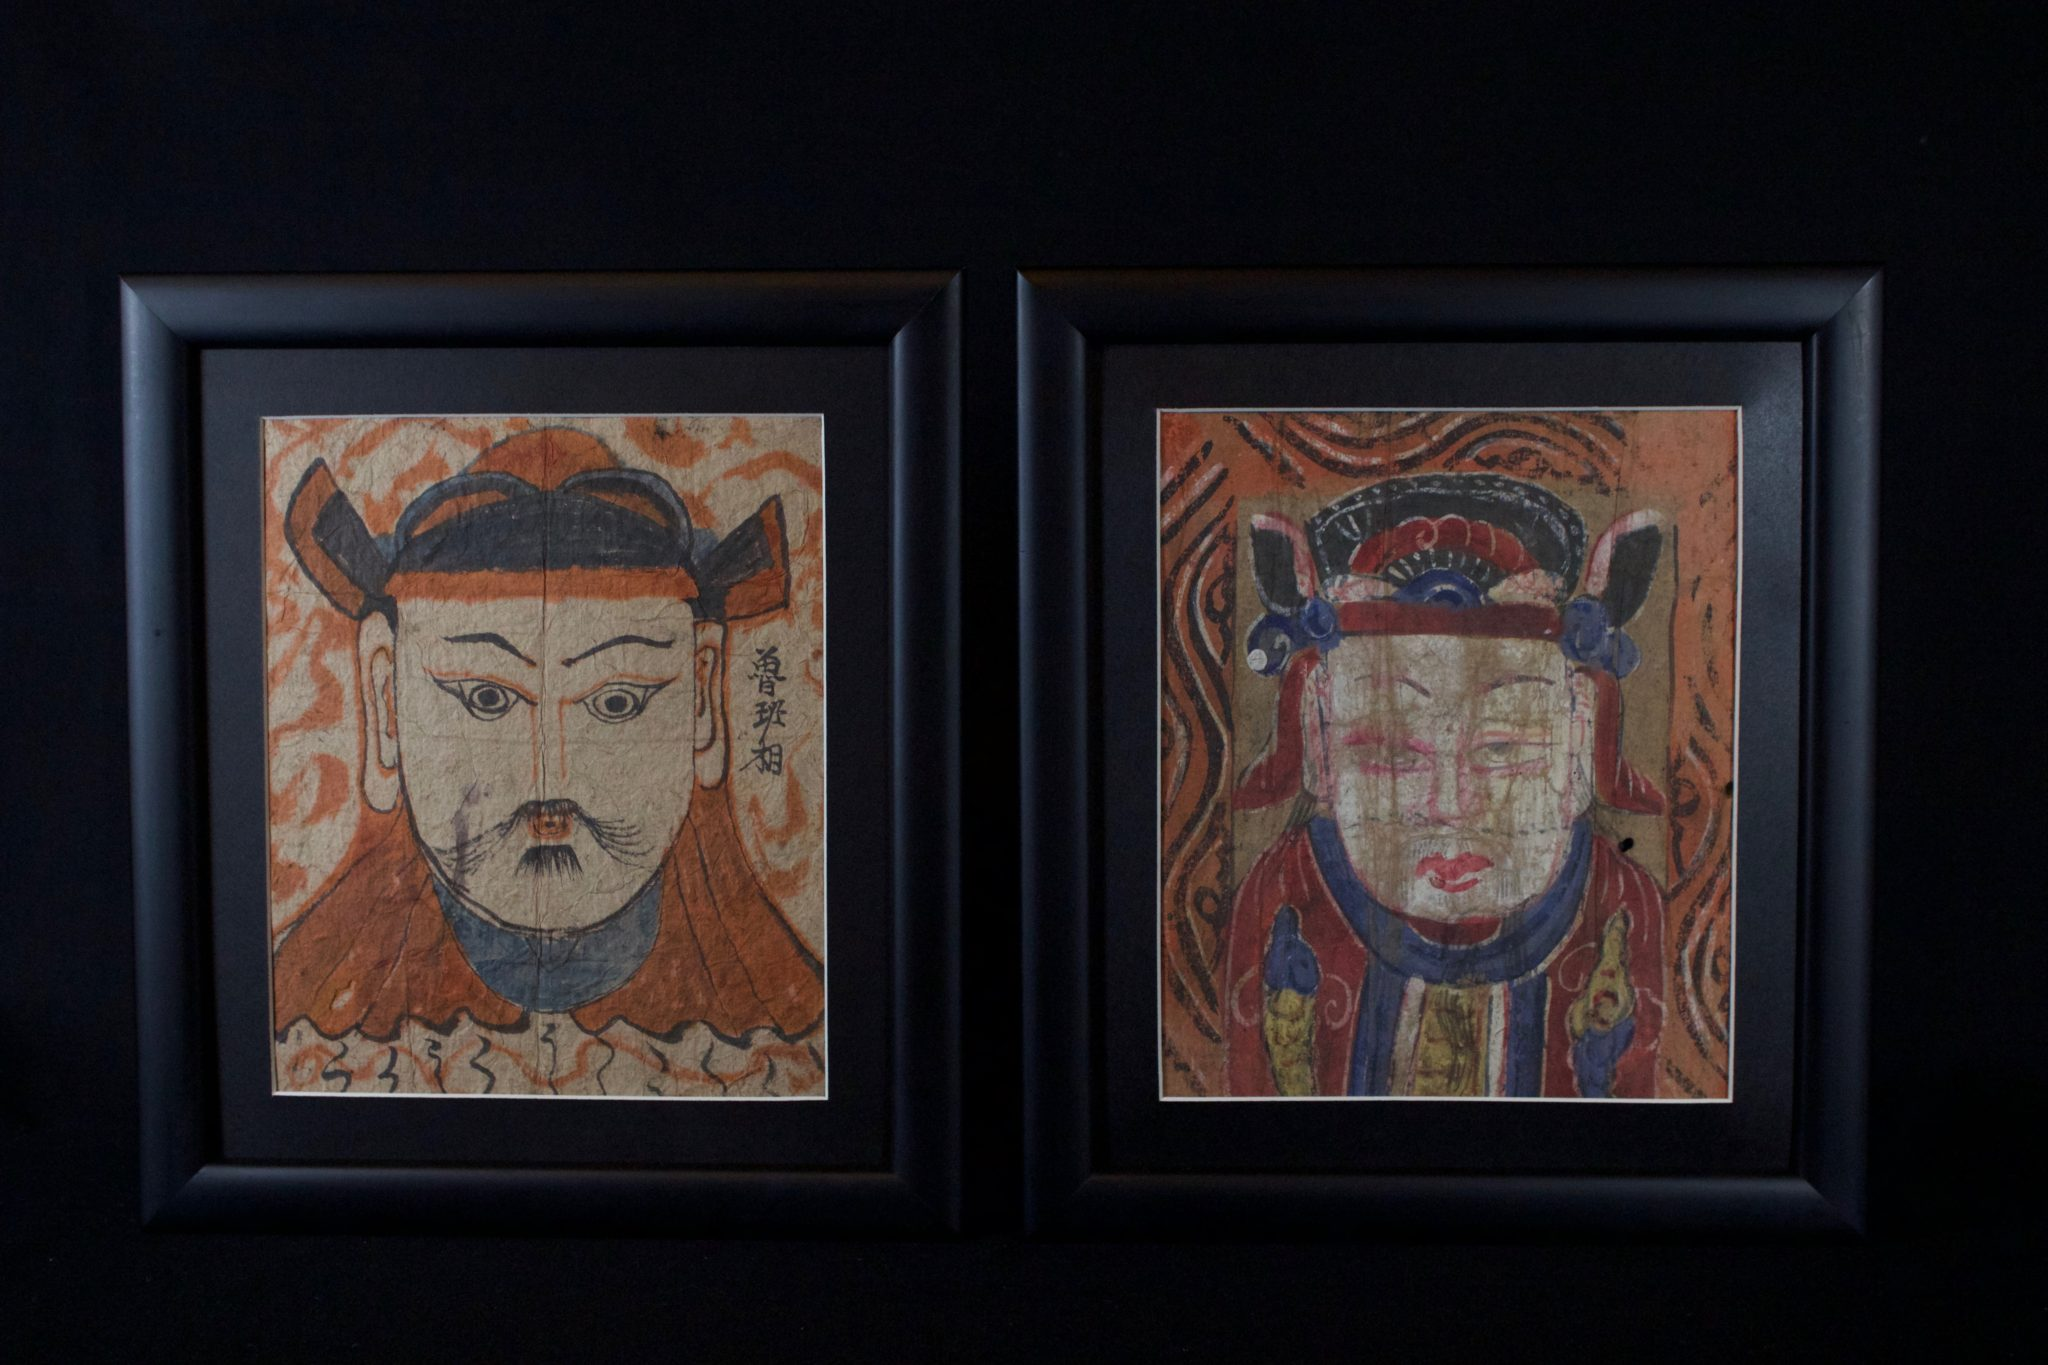 """Ceremonial Mask Vietnam/Thailand Early 20th c. Pigment (ink and watercolor) on handmade paper Paper masks are required possessions for shaman. Usually tied to the forehead, they are worn during certain rituals to impersonate deities. A shaman will have a full set of twenty seven. Only female shaman can wear masks of female deities. 11 ¼"""" x 9 ¾"""" x ¾"""" (framed) $240 each"""